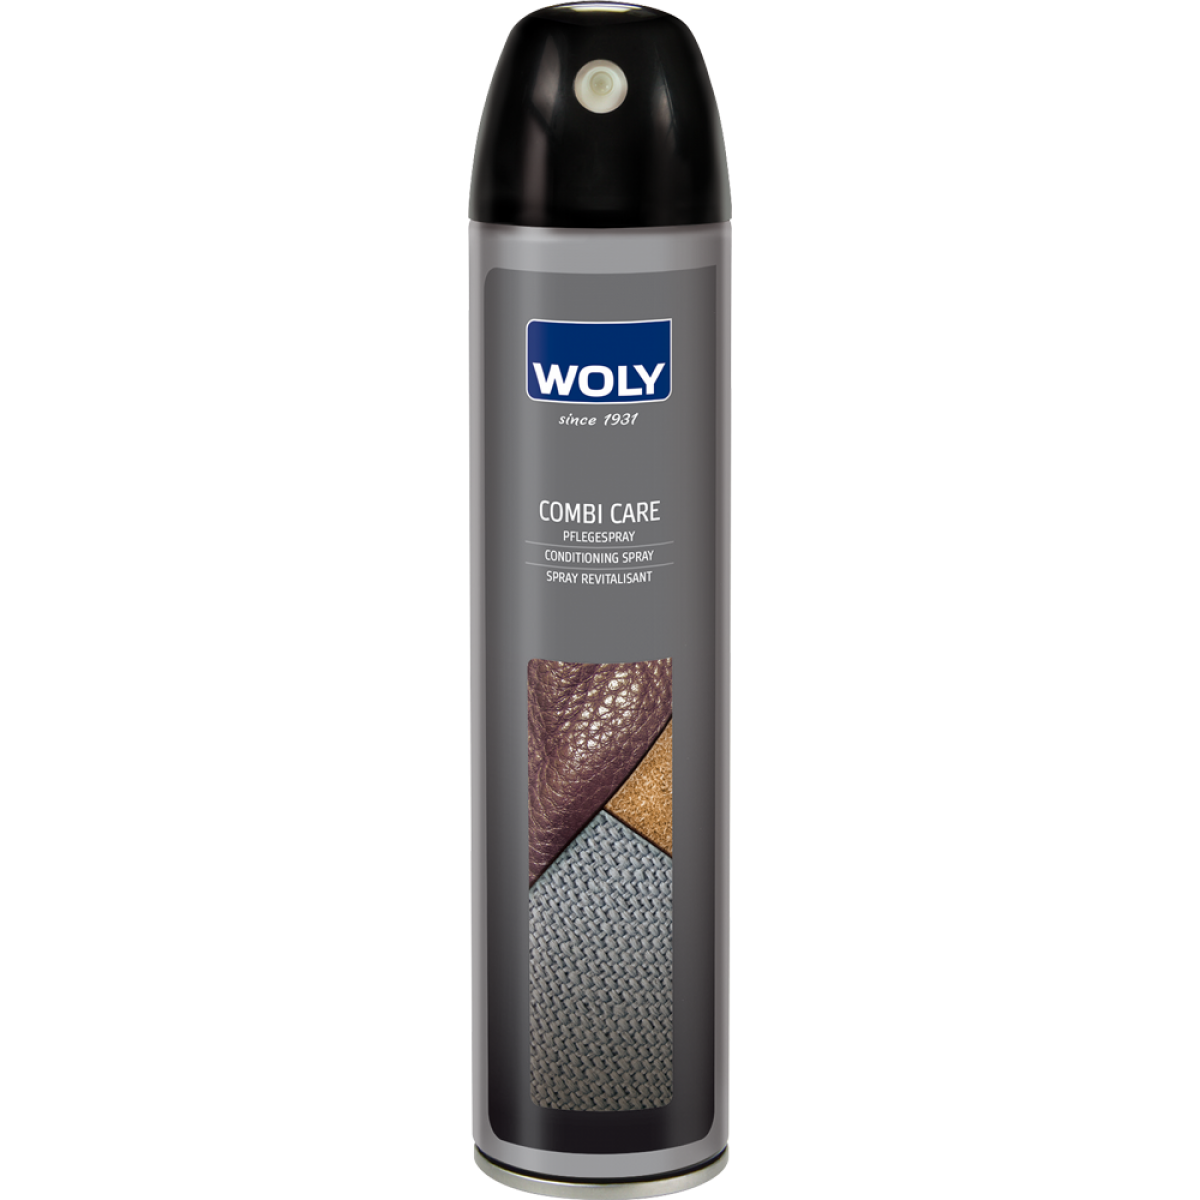 Woly Combi Care 300ml.-32